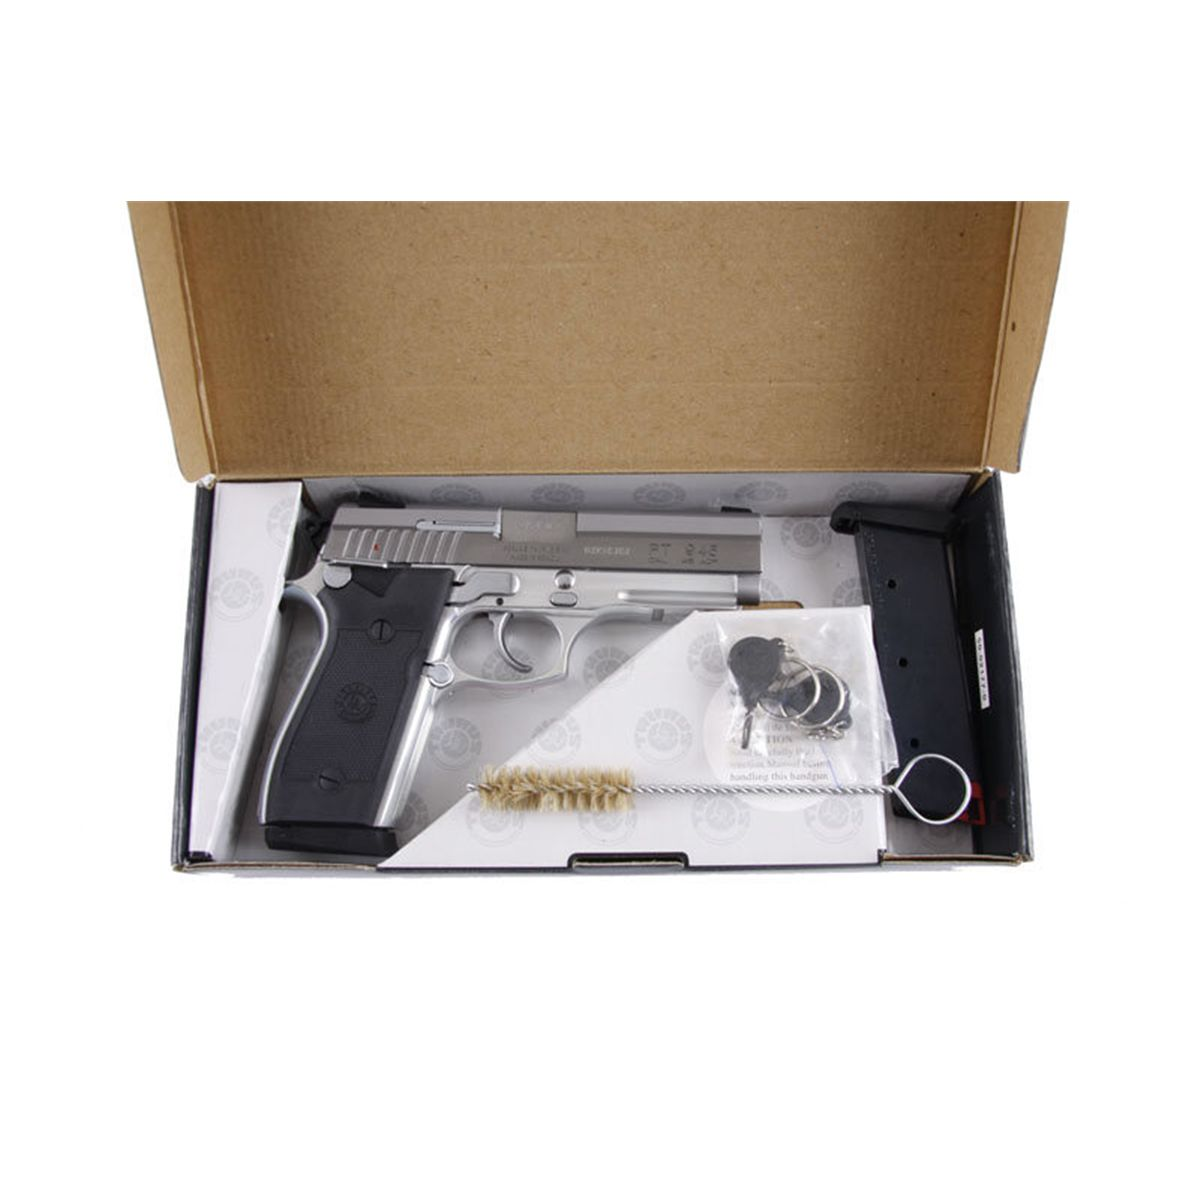 Taurus Mdl PT945 Cal  45acp SN:NZK50302 Double/single action